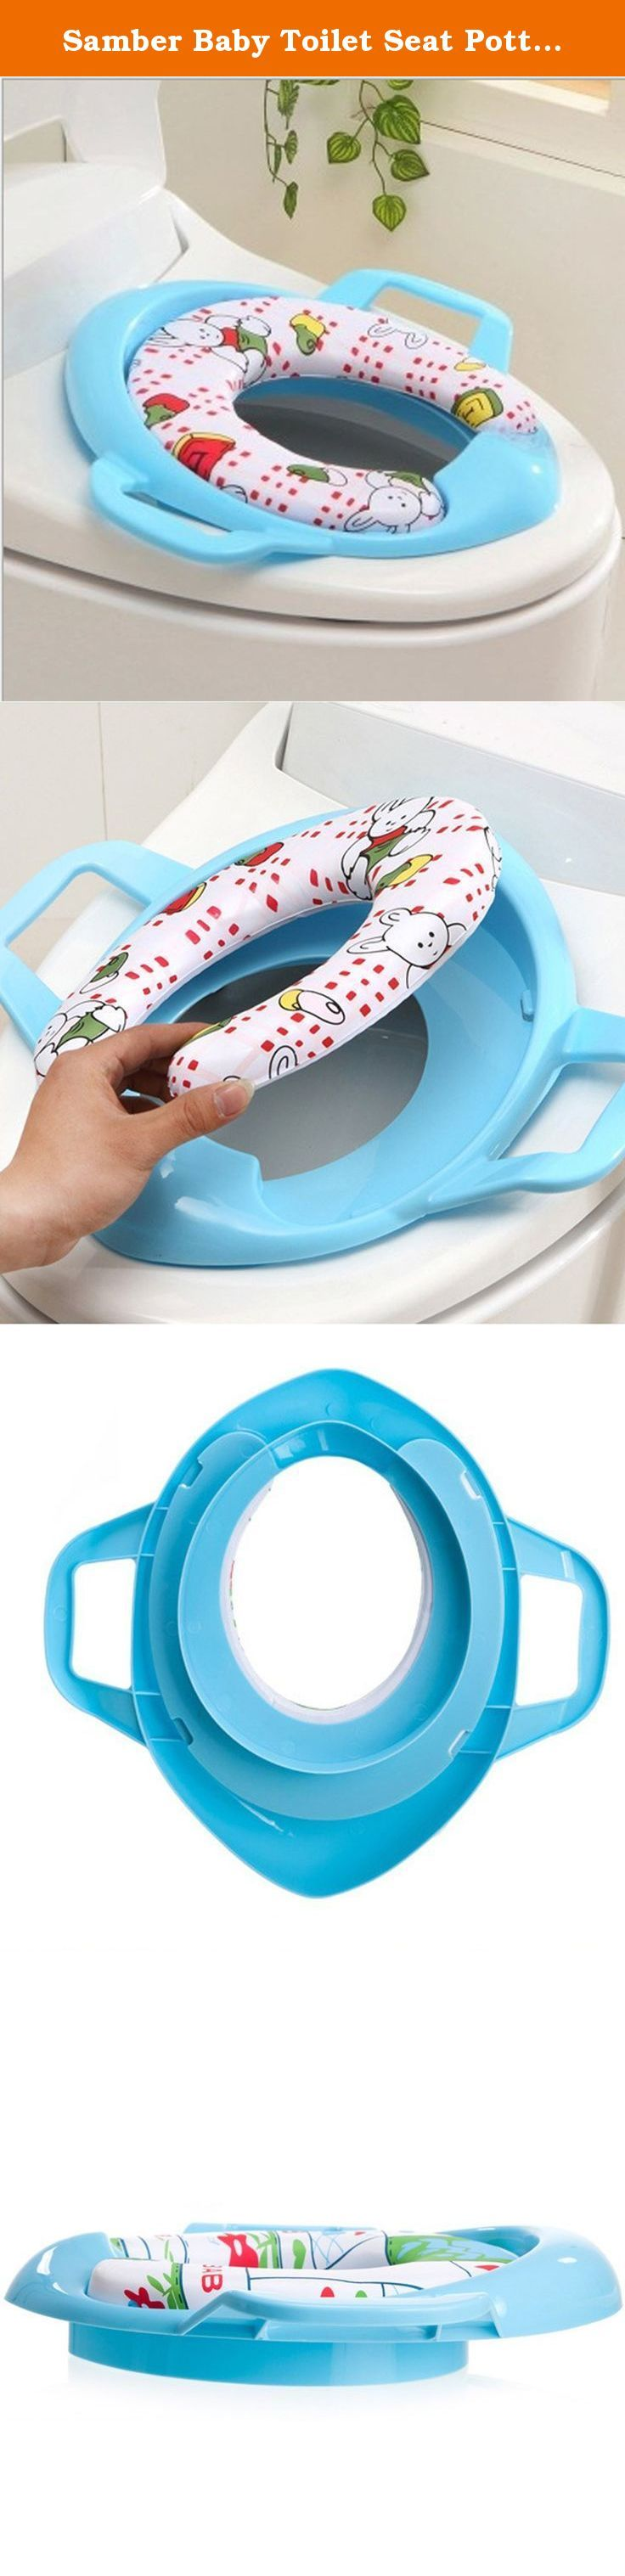 Samber Baby Toilet Seat Potty Training Seat Potty Ring (Blue). Features: 1. With the use of environmental protection grade PP, healthy and environmental friendly, wear-resisting and impact resistant , durable, easy to clean. 2. The seat with soft PC sponge let your baby use toilet comfortably. 3. It can make baby use toilet safely with handle design on both sides. 4. Easy to use without installation, directly to put the toilet seat on the toilet, and then let the bottom of the anti-slip…